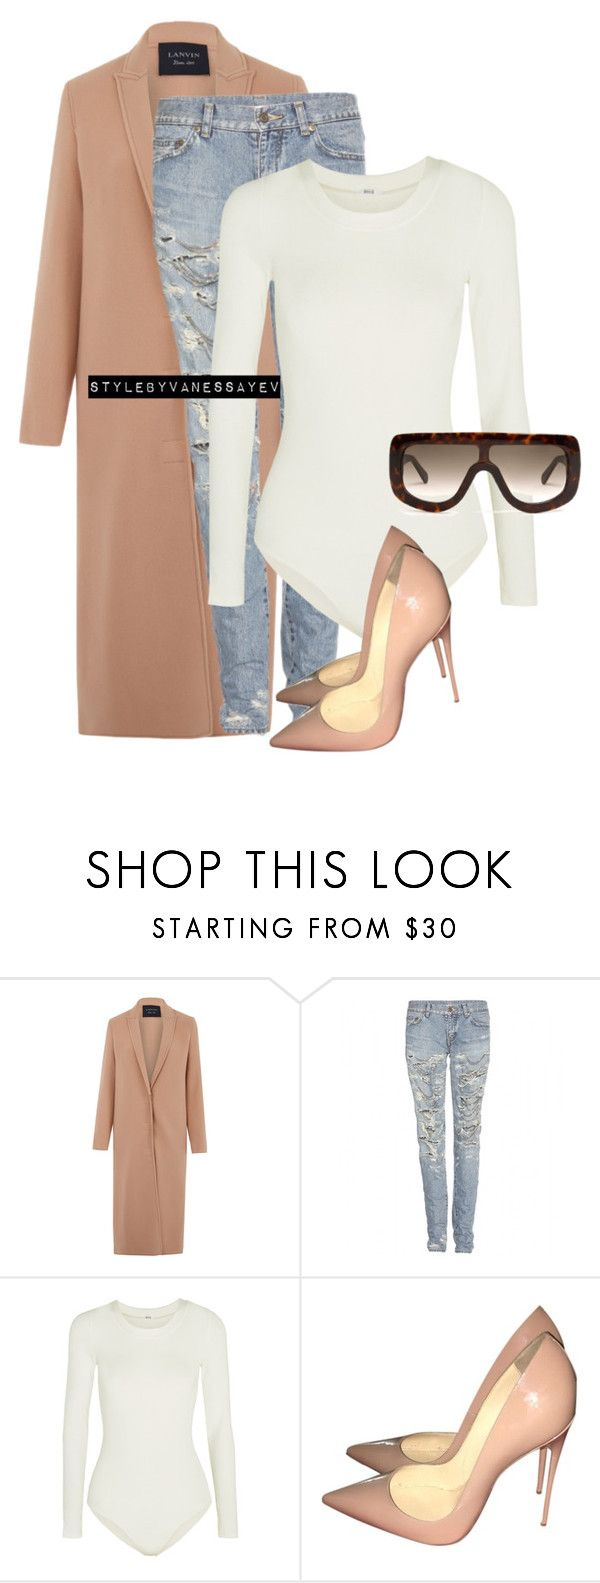 """""""#937"""" by vanessayev ❤ liked on Polyvore featuring Lanvin, Yves Saint Laurent, Wolford, Christian Louboutin and CÉLINE"""